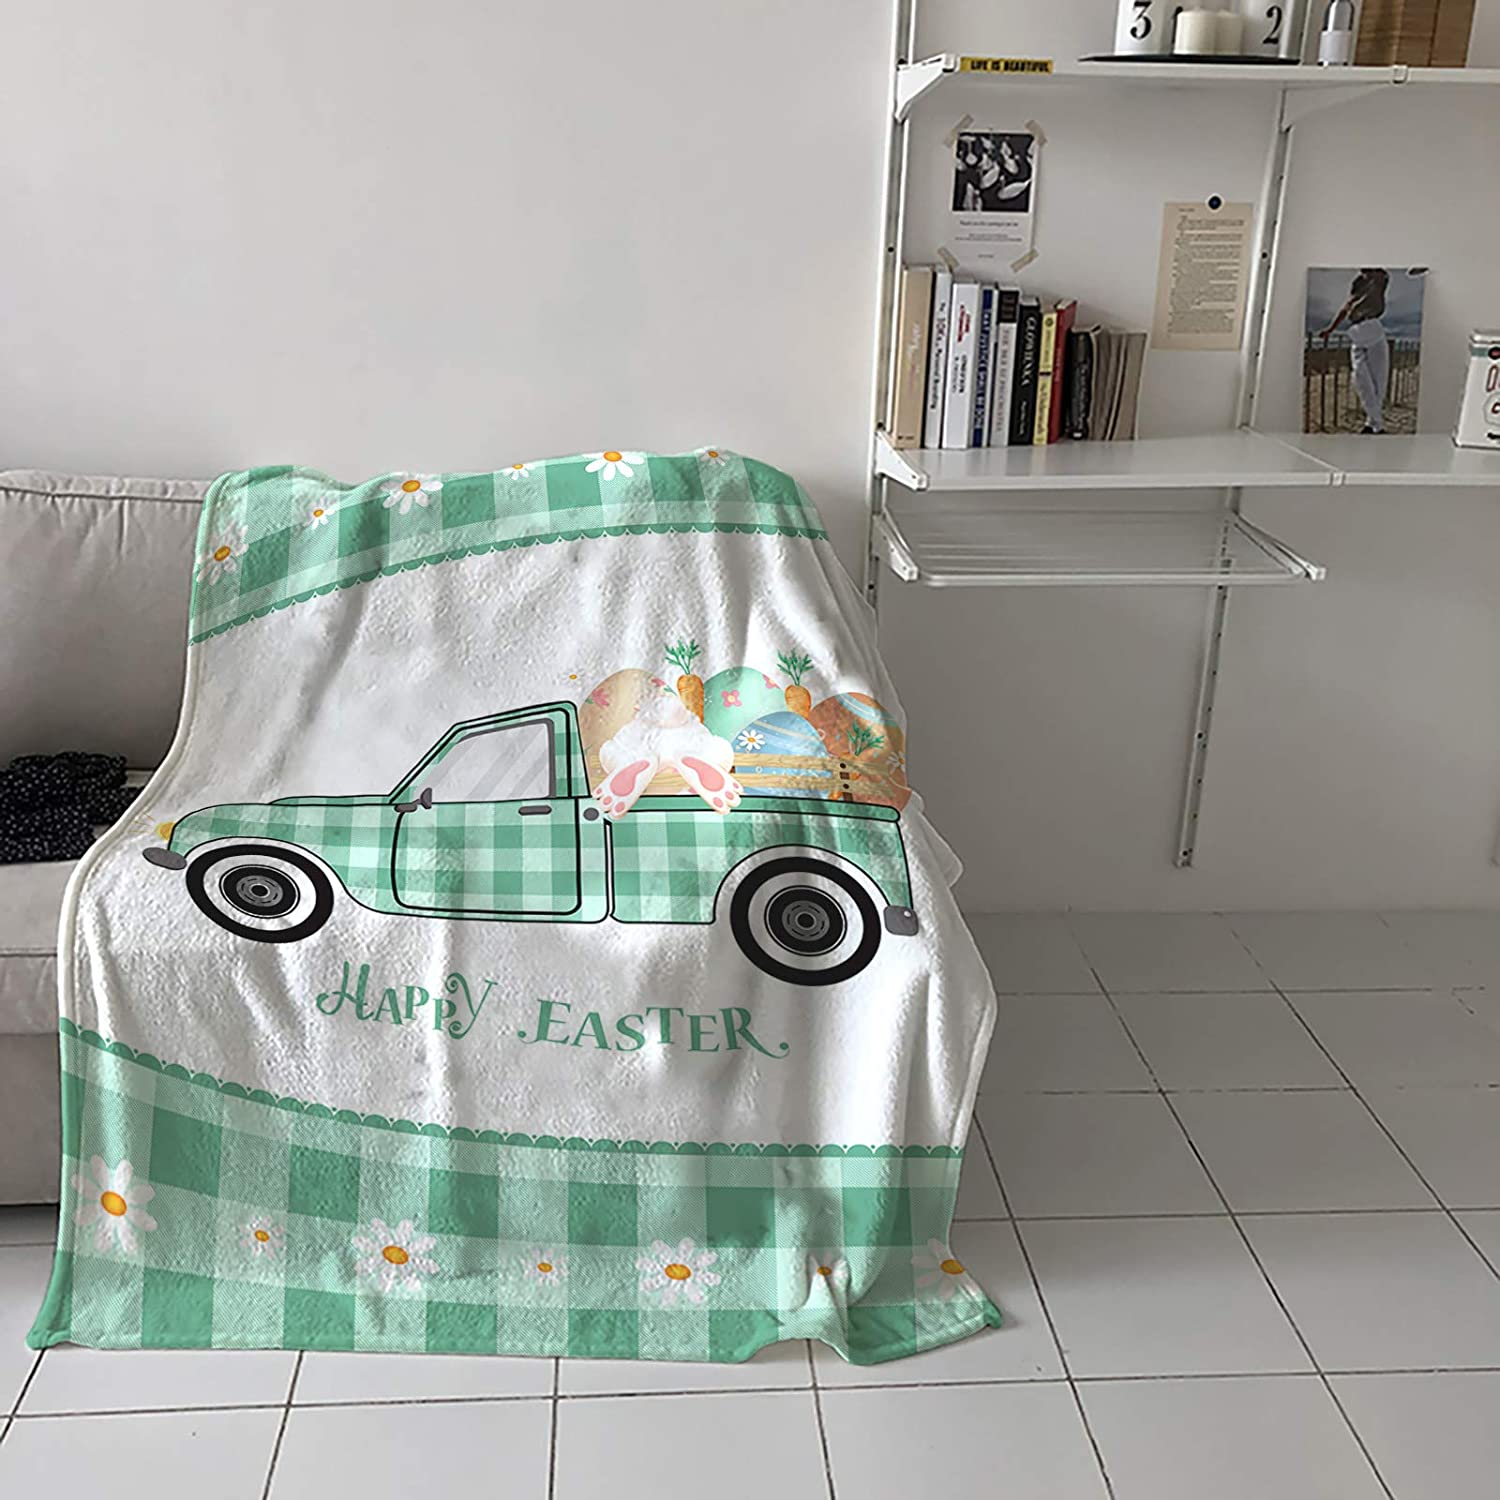 Flannel Regular store Fleece Throw Blanket for Couch Easter or Low price Bed Happy Sofa